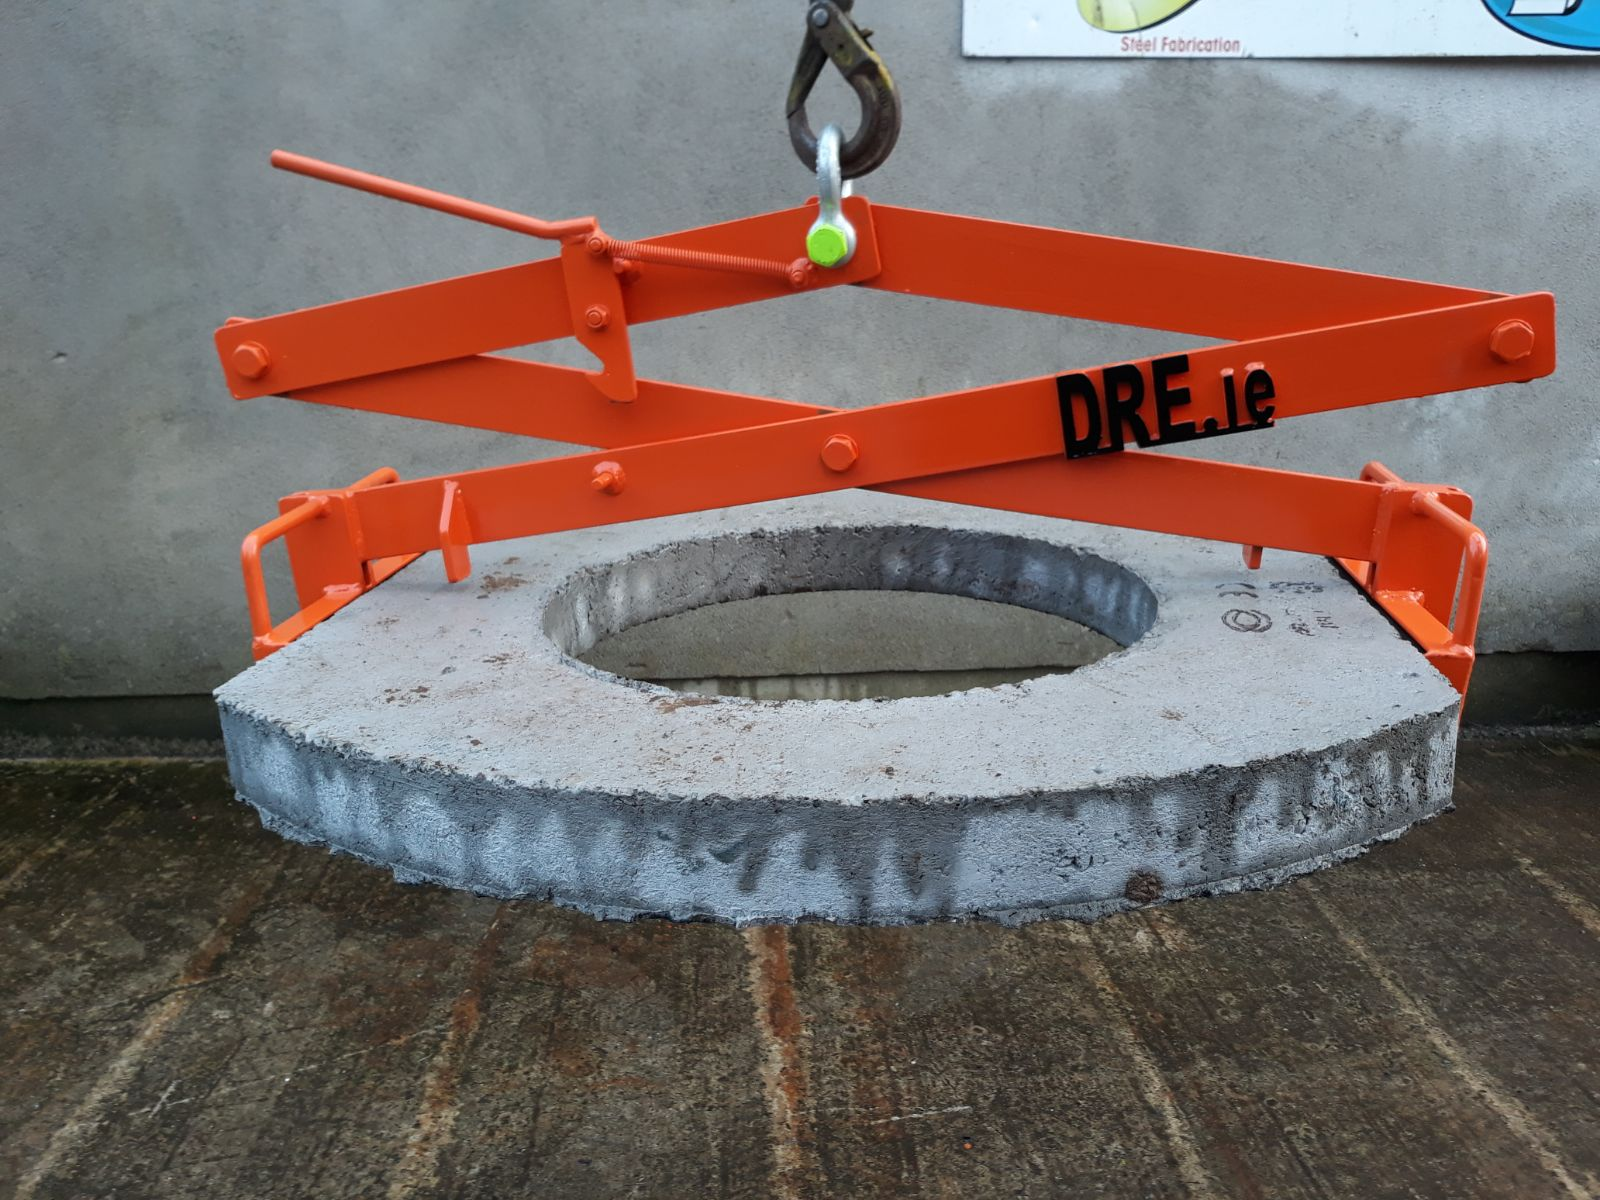 Manhole Lifting Grab dre.ie